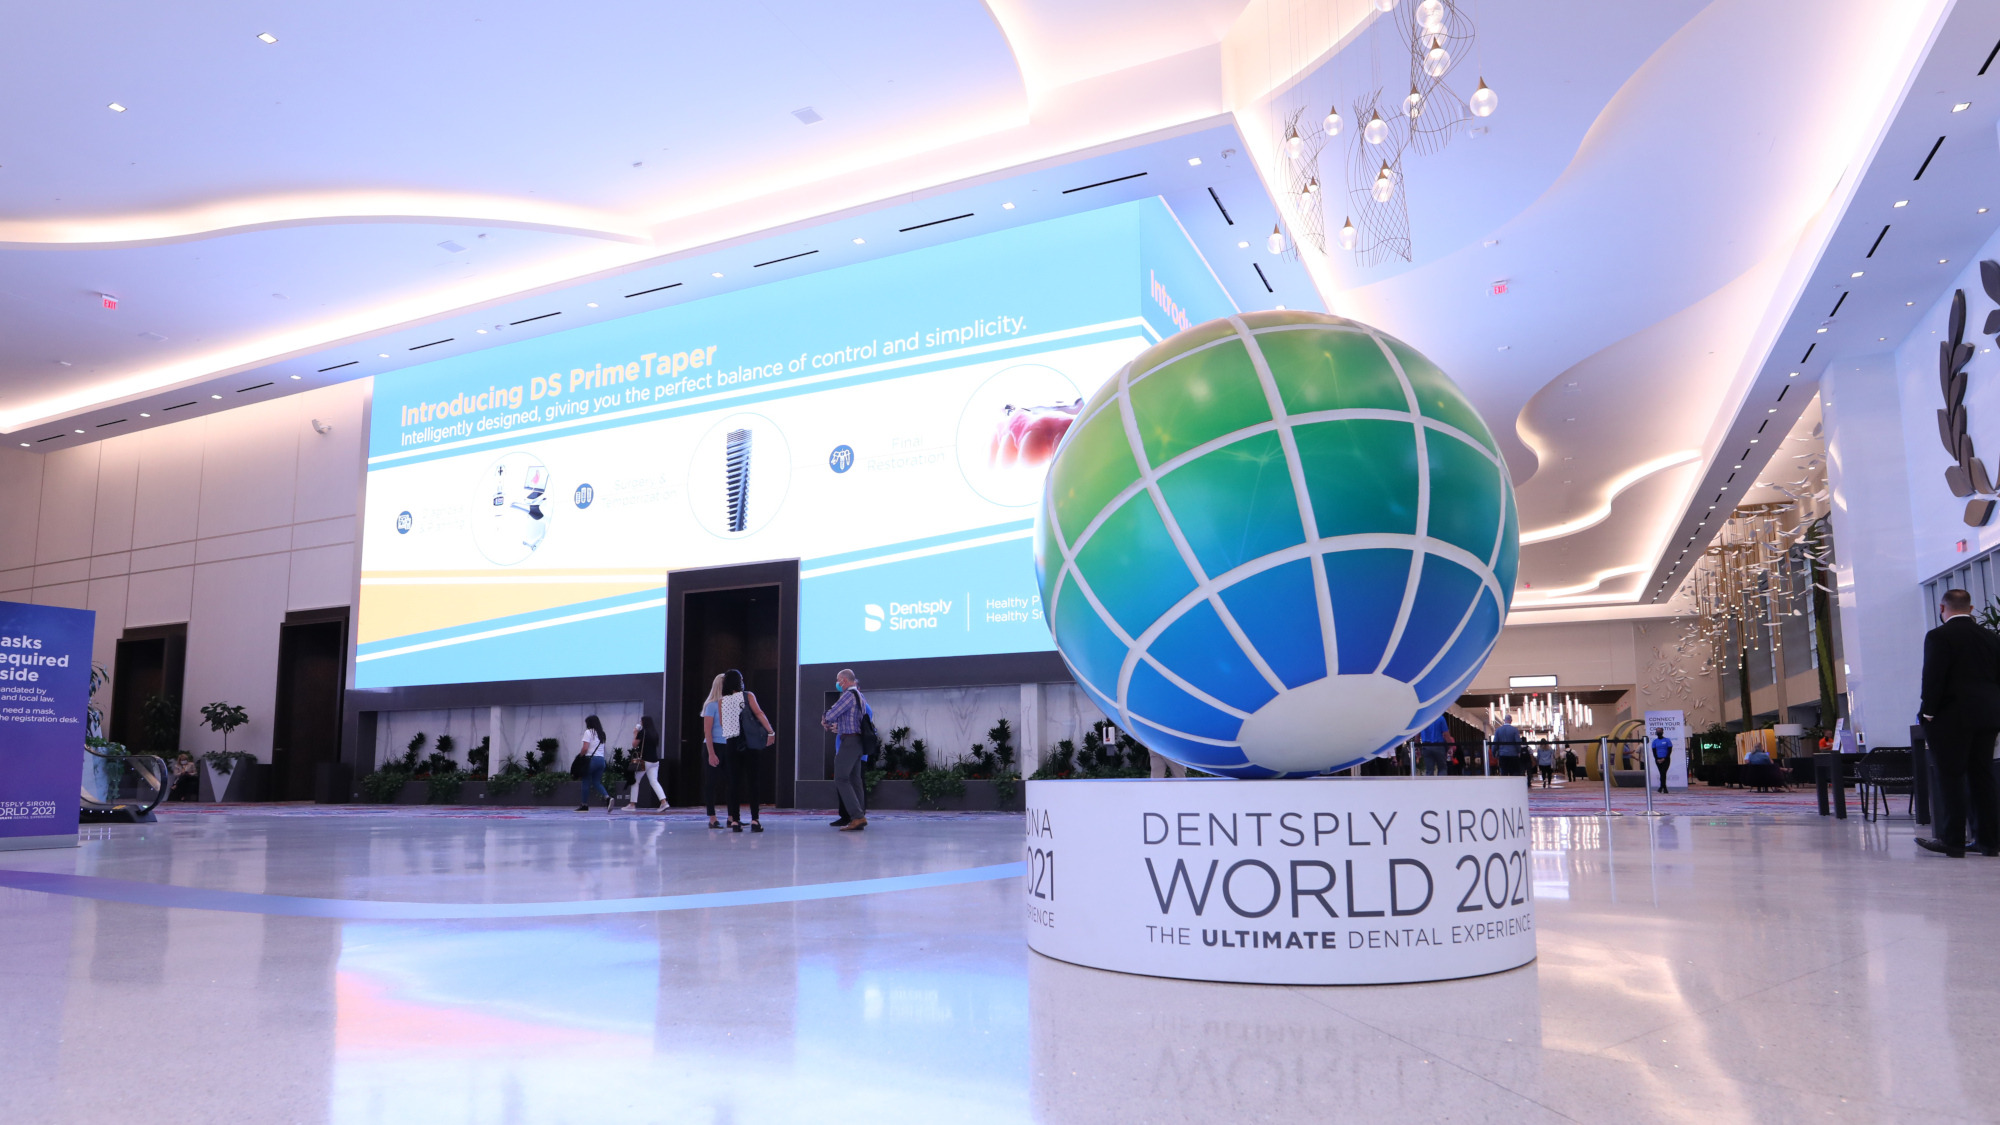 DS World 2021: Latest innovations, product launches and partnership announcements